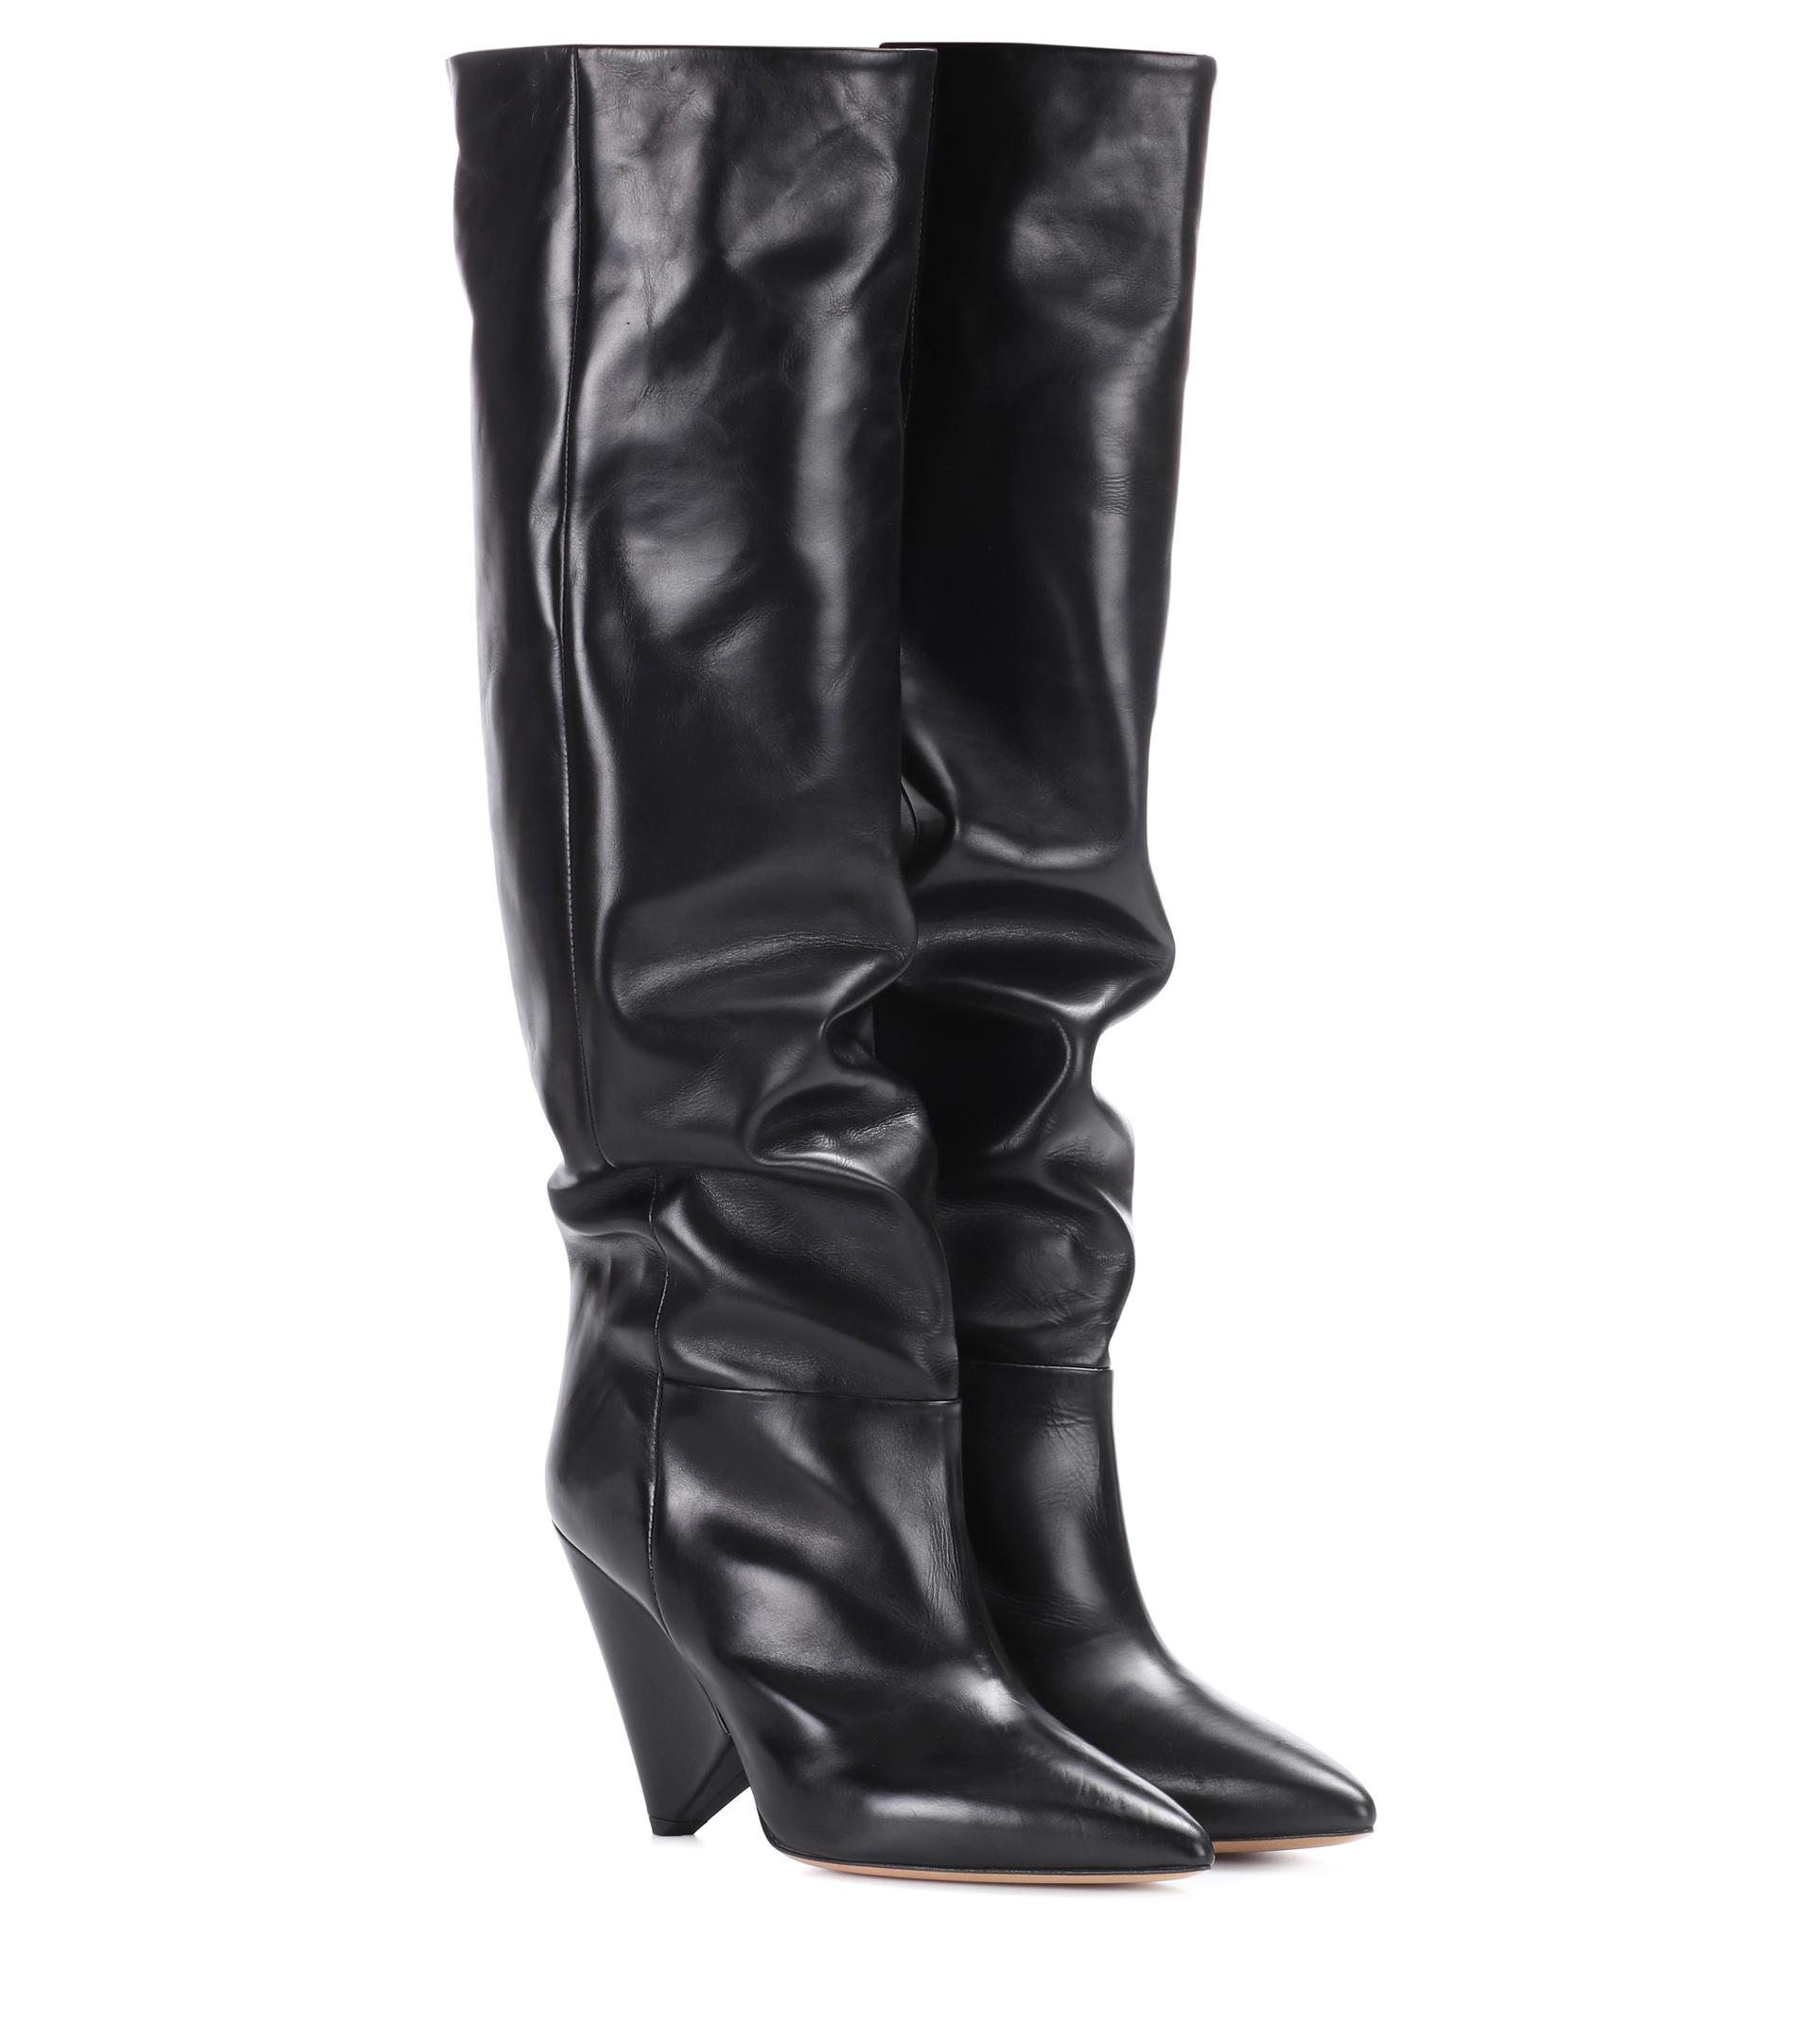 466e163ca4e Isabel Marant Lokyo Leather Knee-high Boots in Black - Lyst